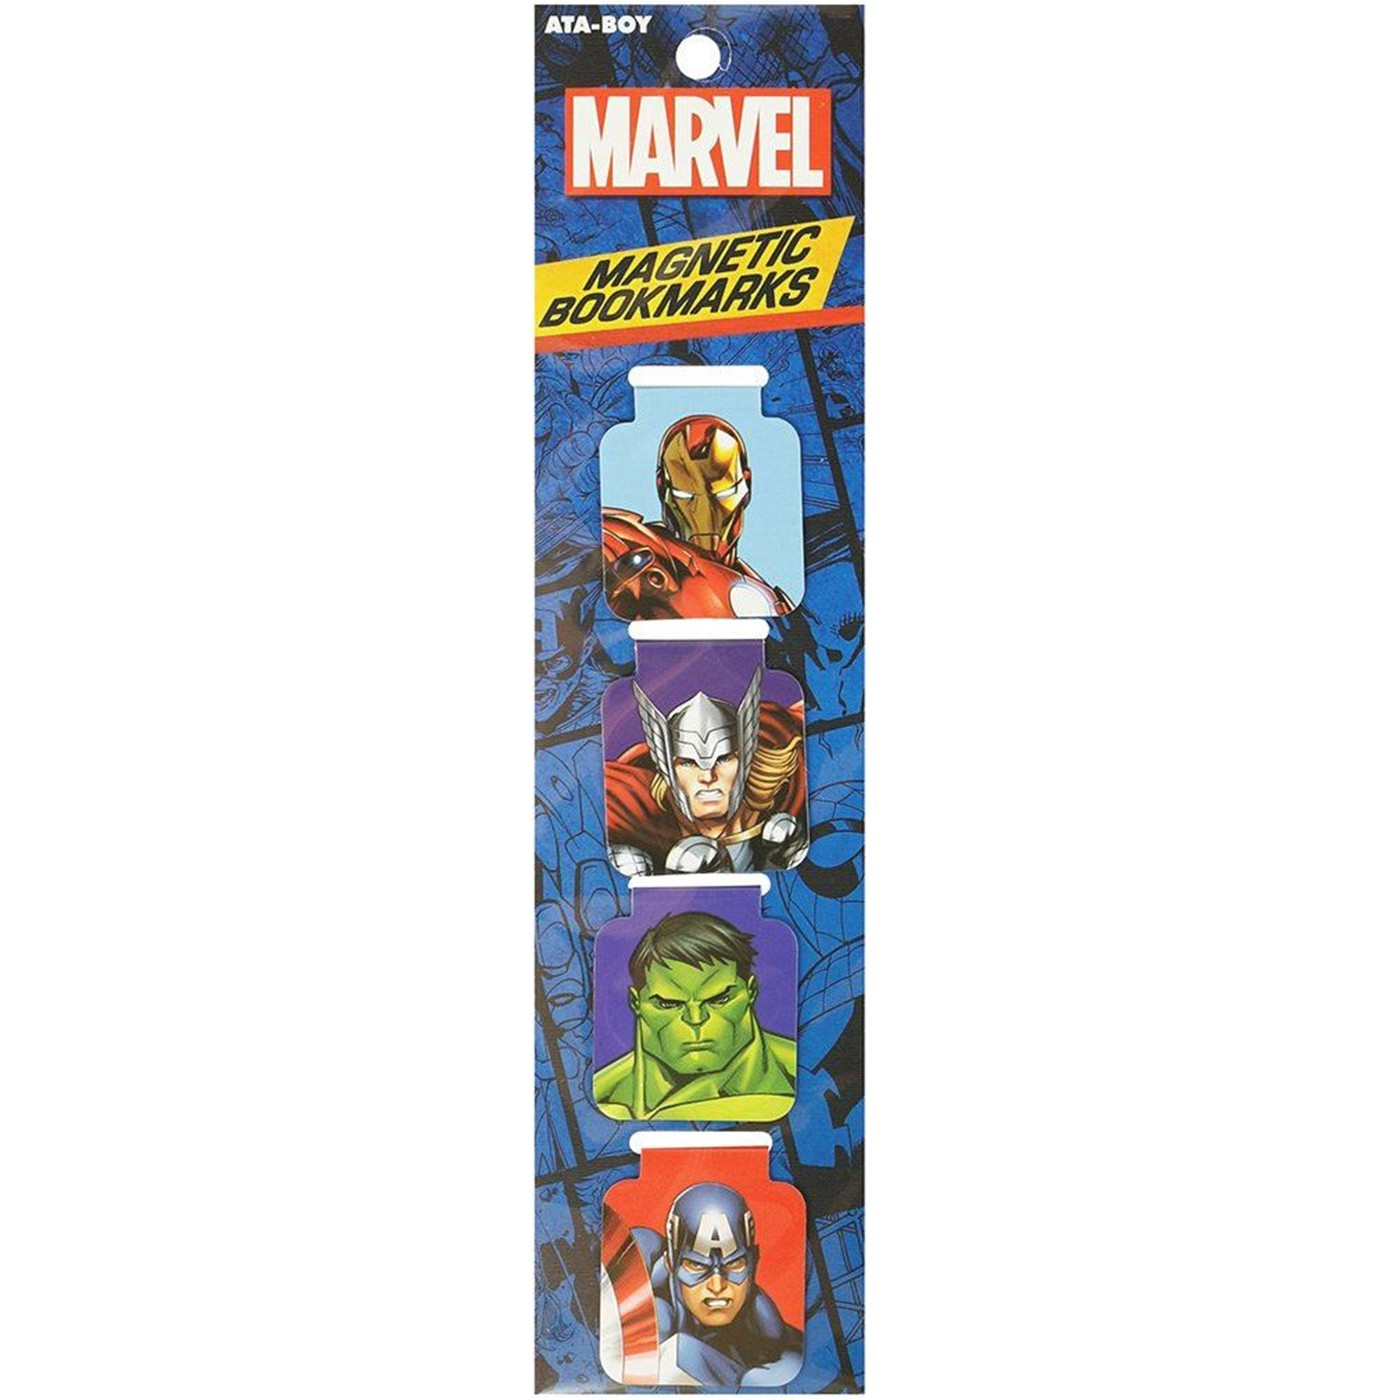 Avengers Bookmark Set